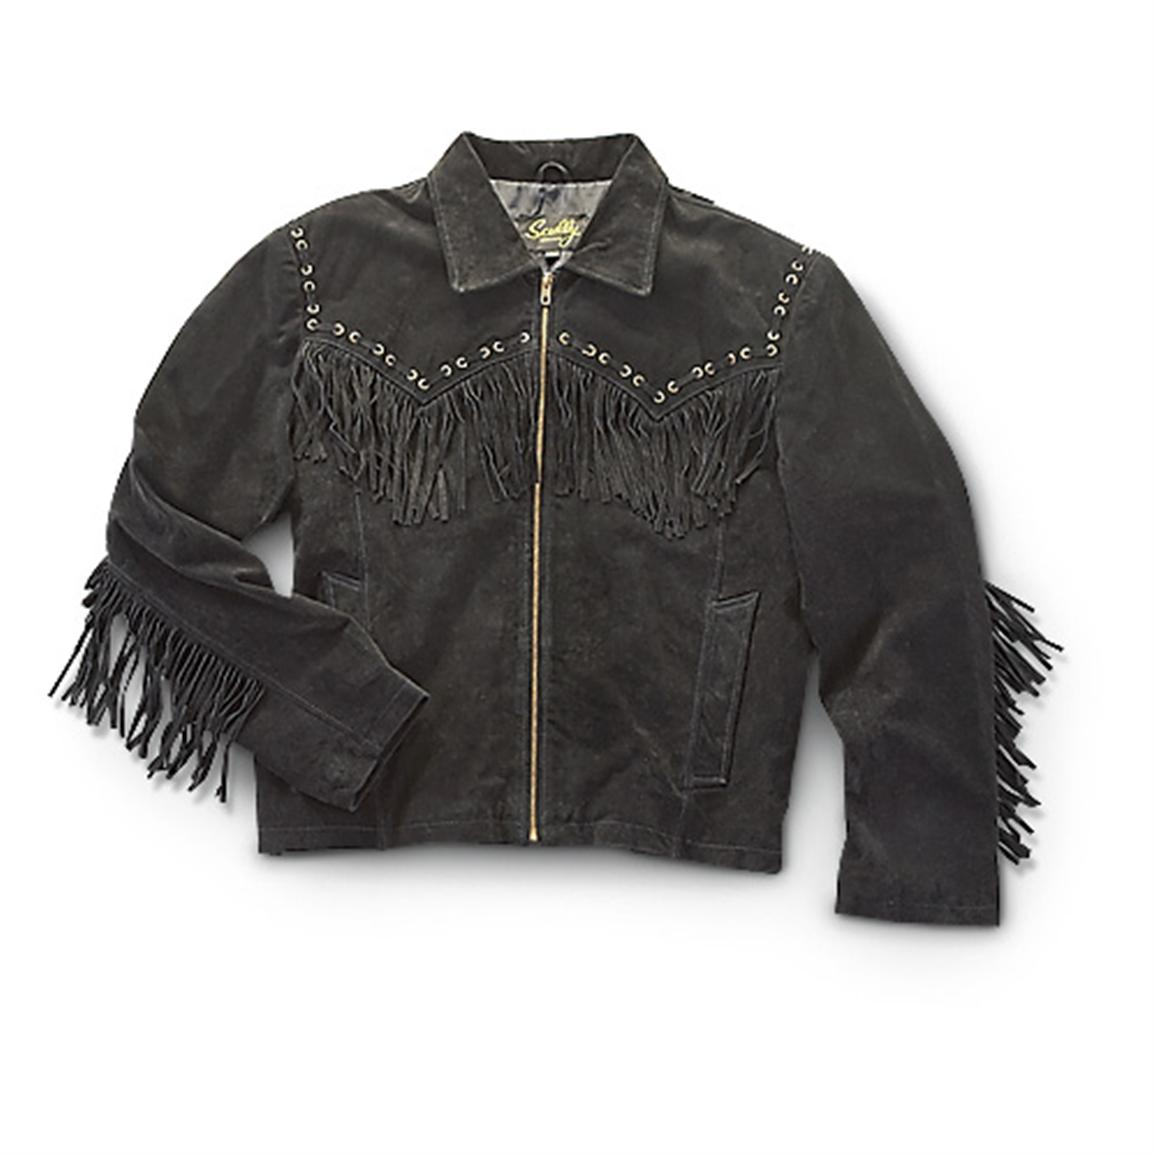 Scully® Fringe Jacket - 212622, Insulated Jackets & Coats at